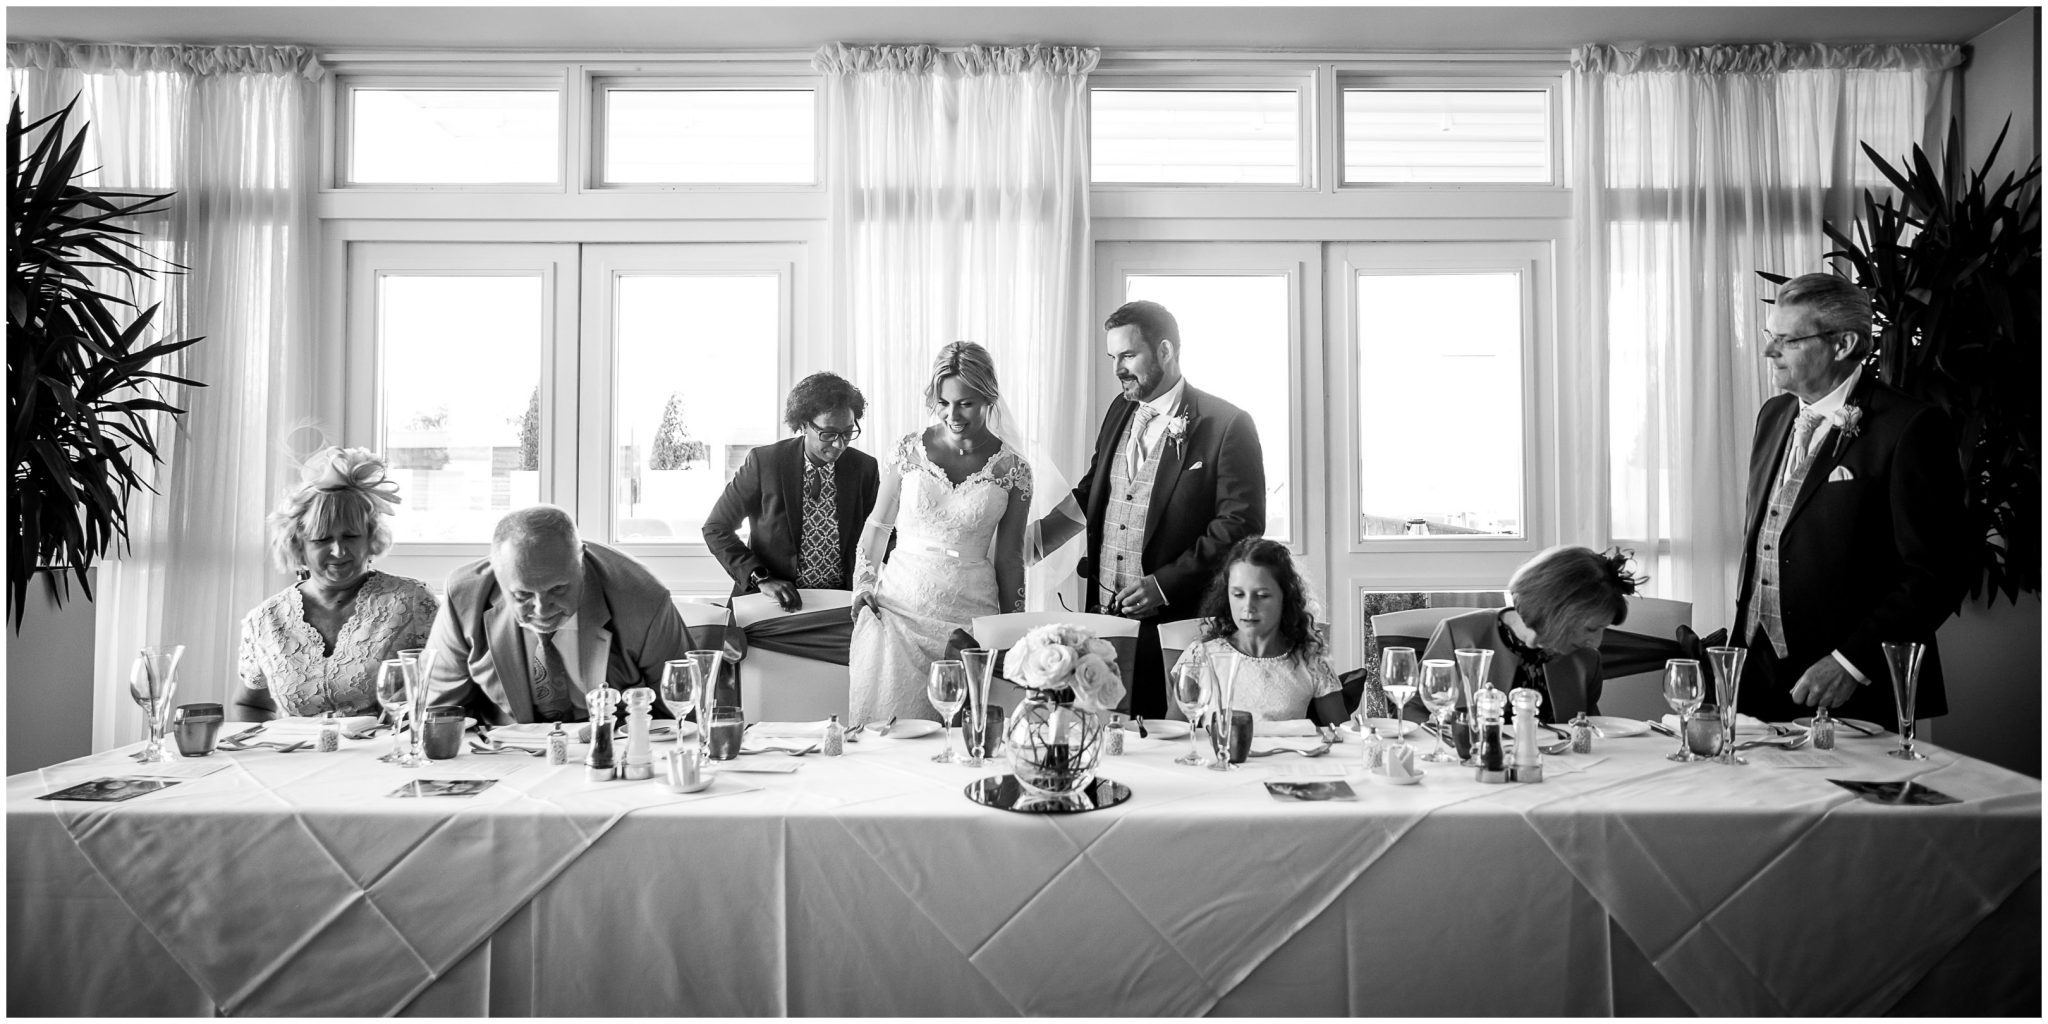 The bride takes her seat tat the top table